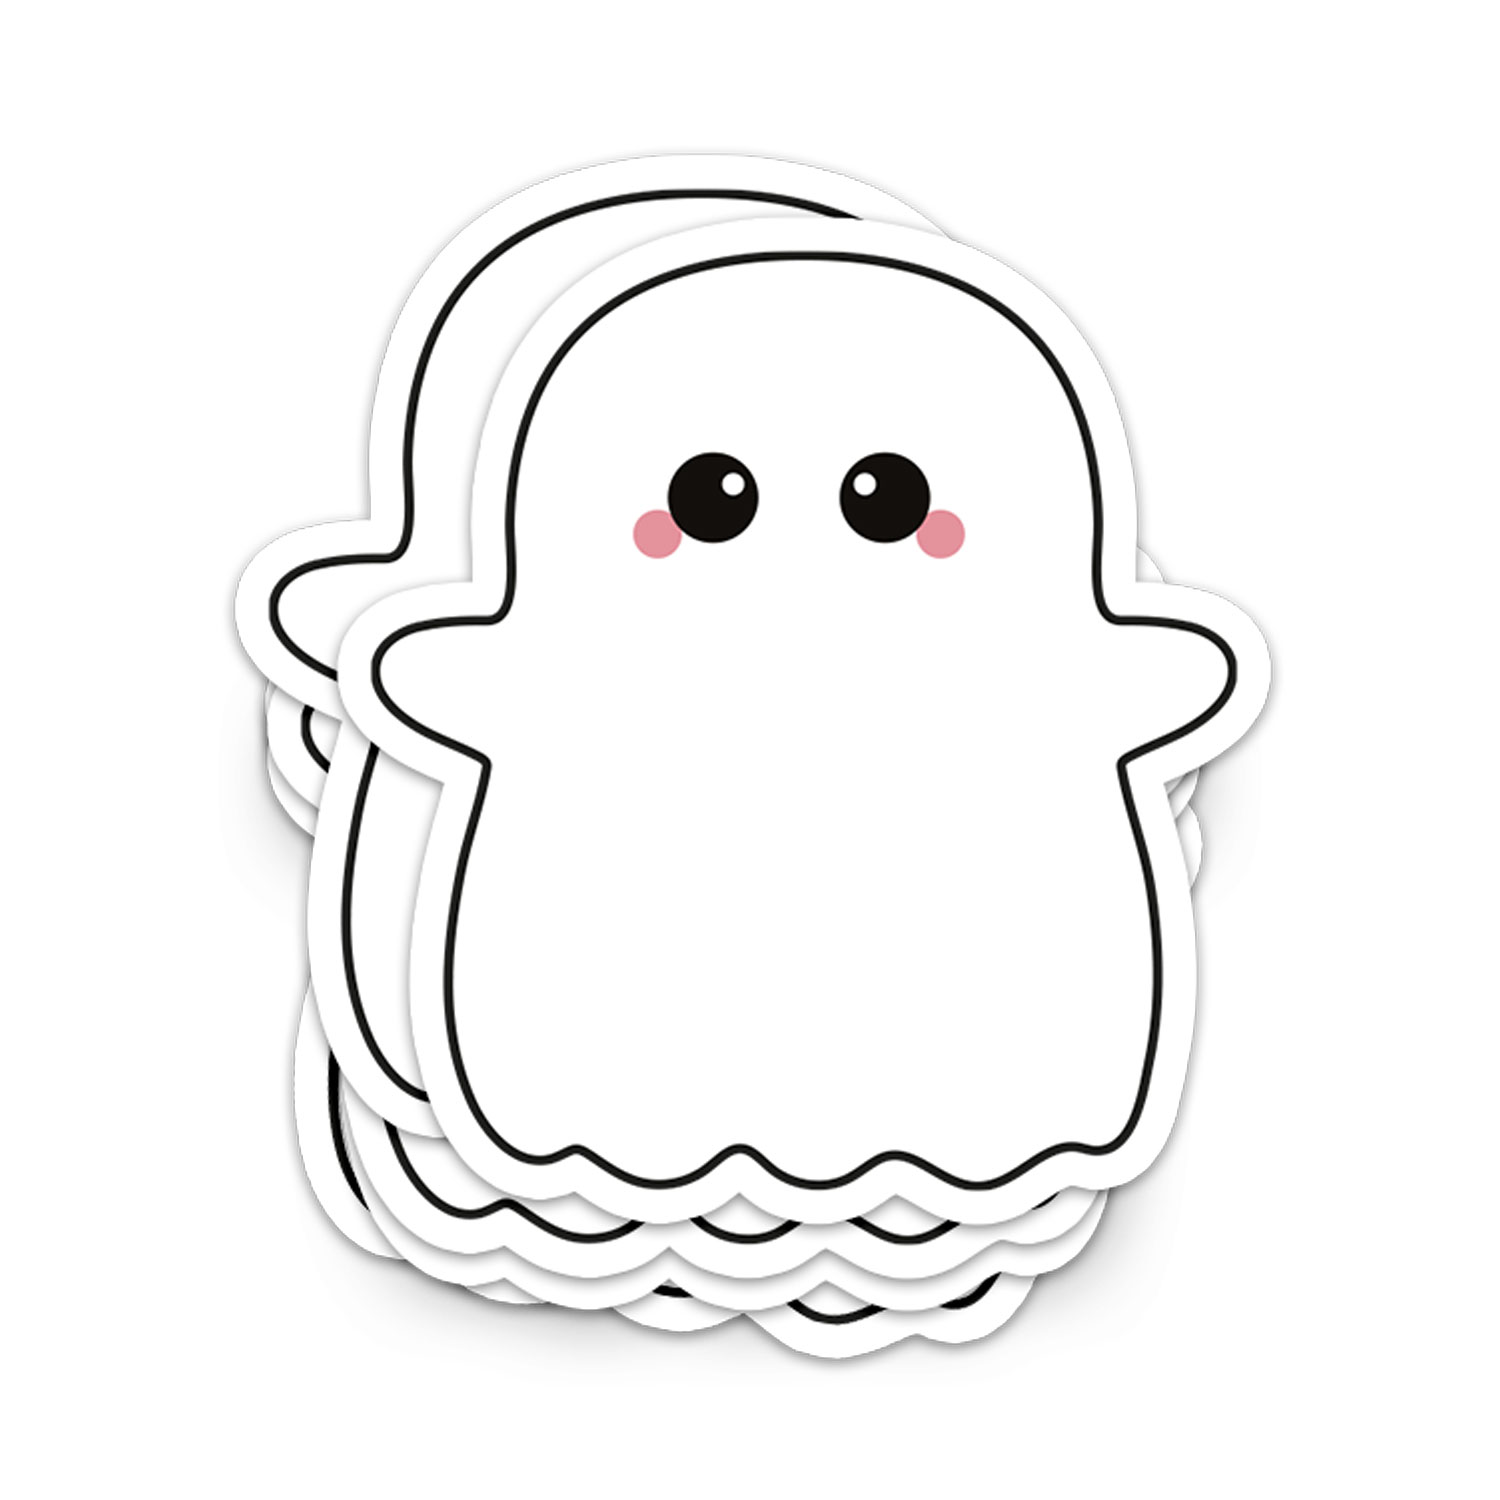 STICKER XL SPOOK